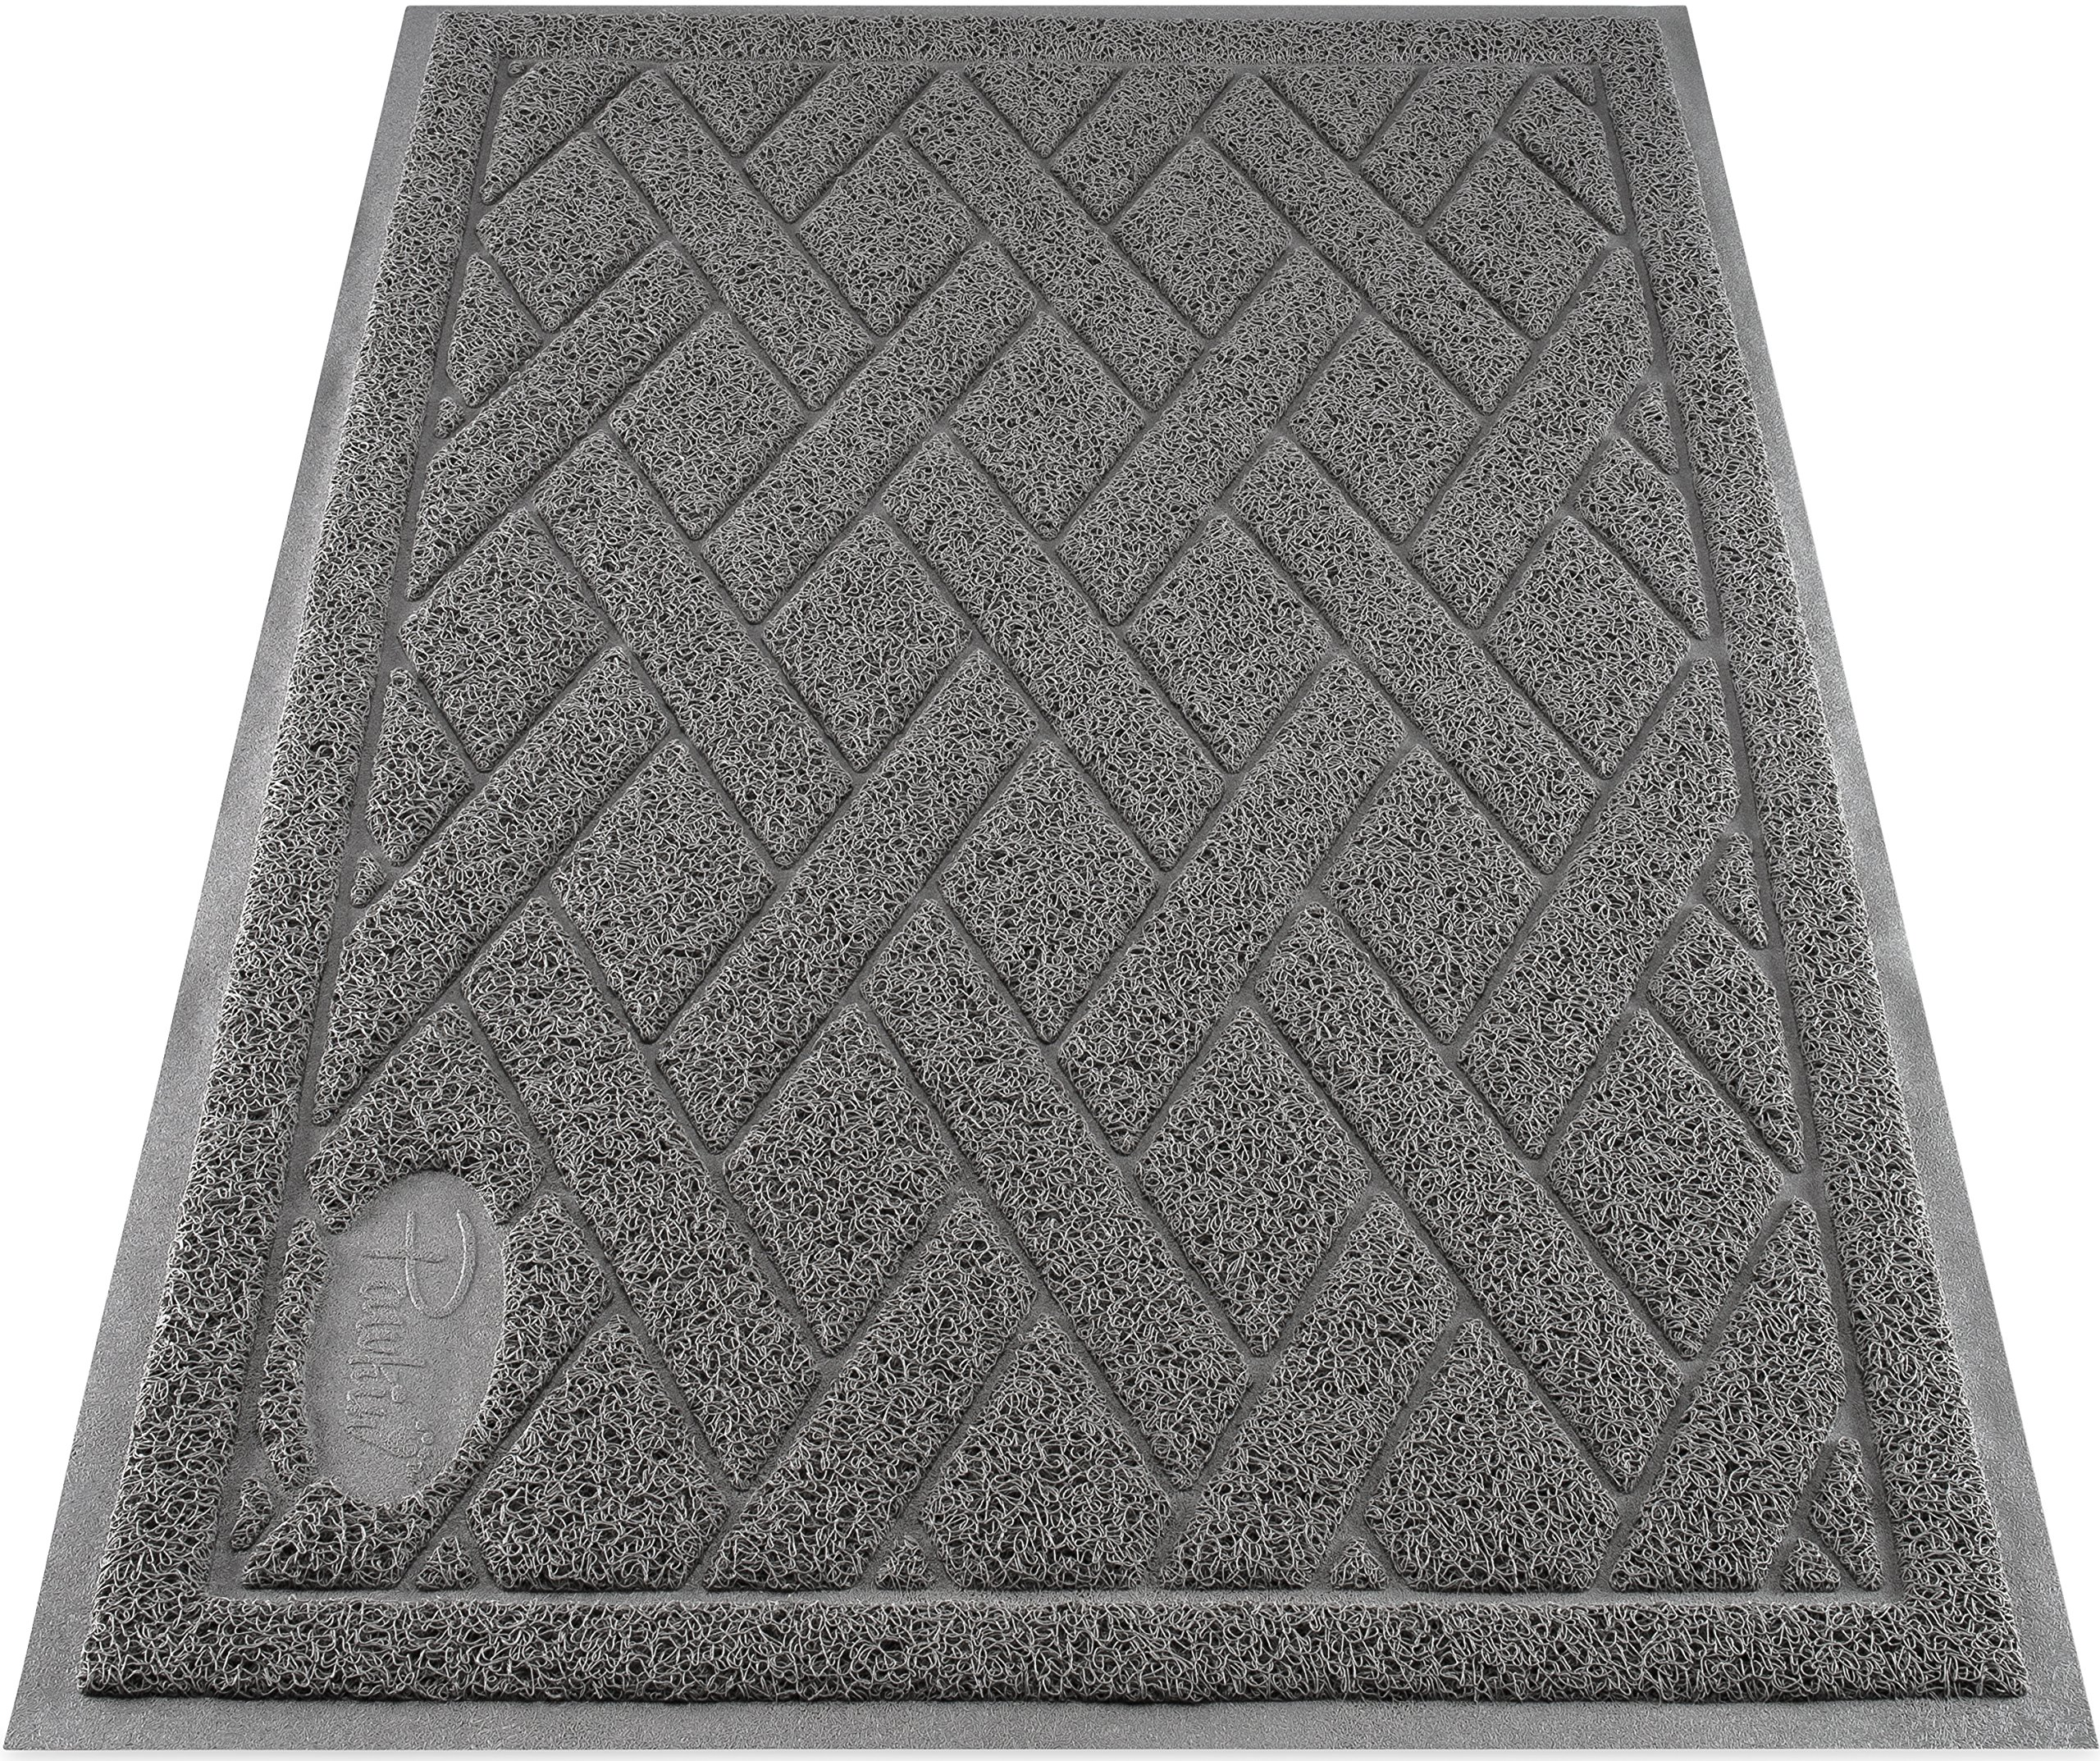 Vinyl Floor Mat Durable Soft And Easy To Clean Ideal: Best Rated In Cat Litter Mats & Helpful Customer Reviews